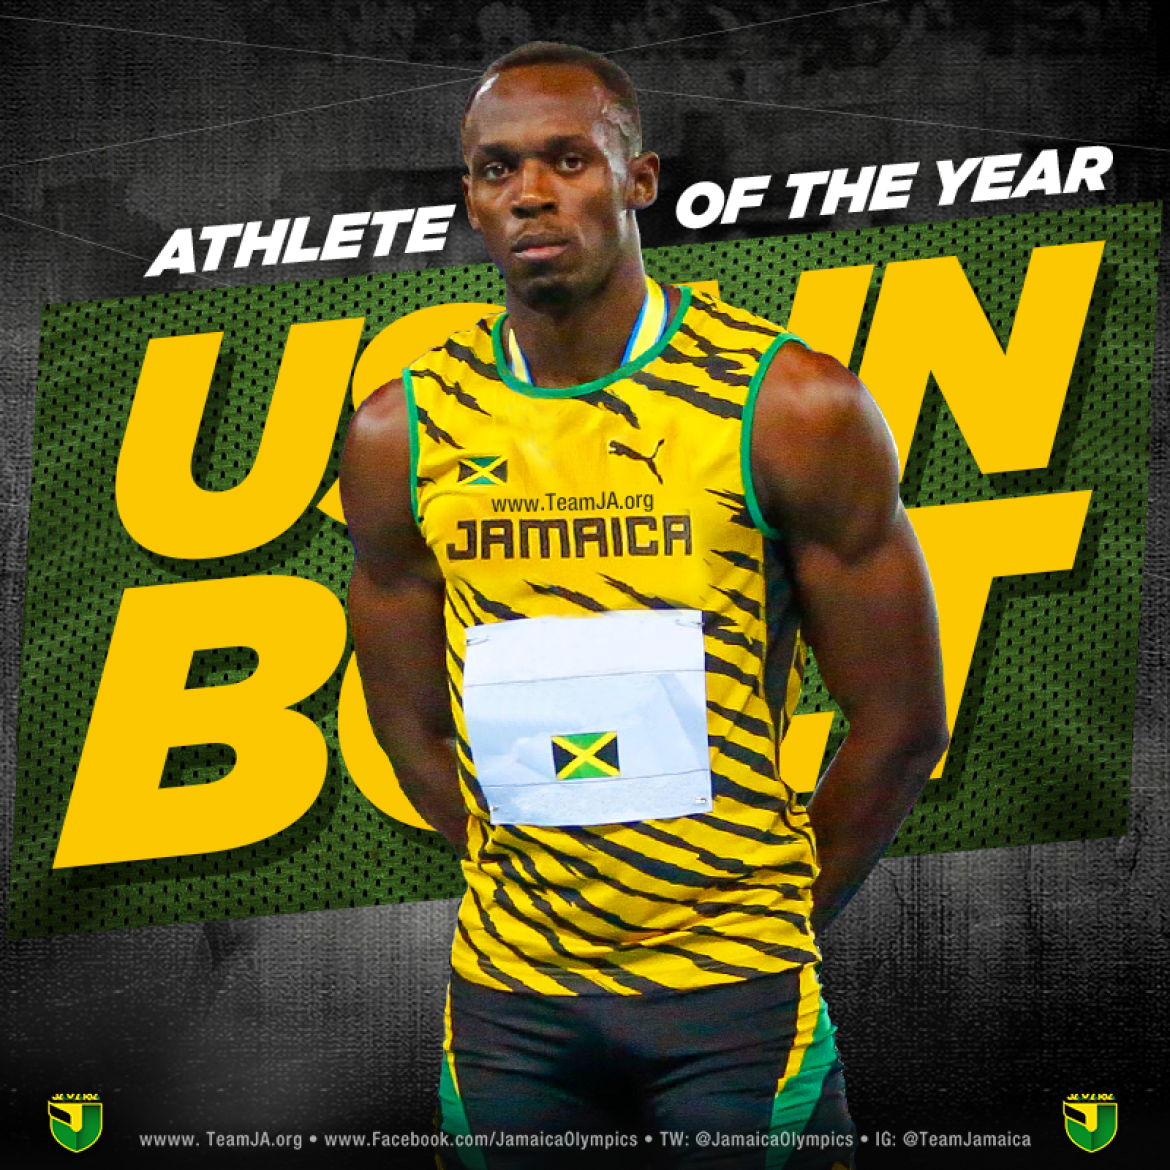 Usain Bolt wins Male Athlete of the Year